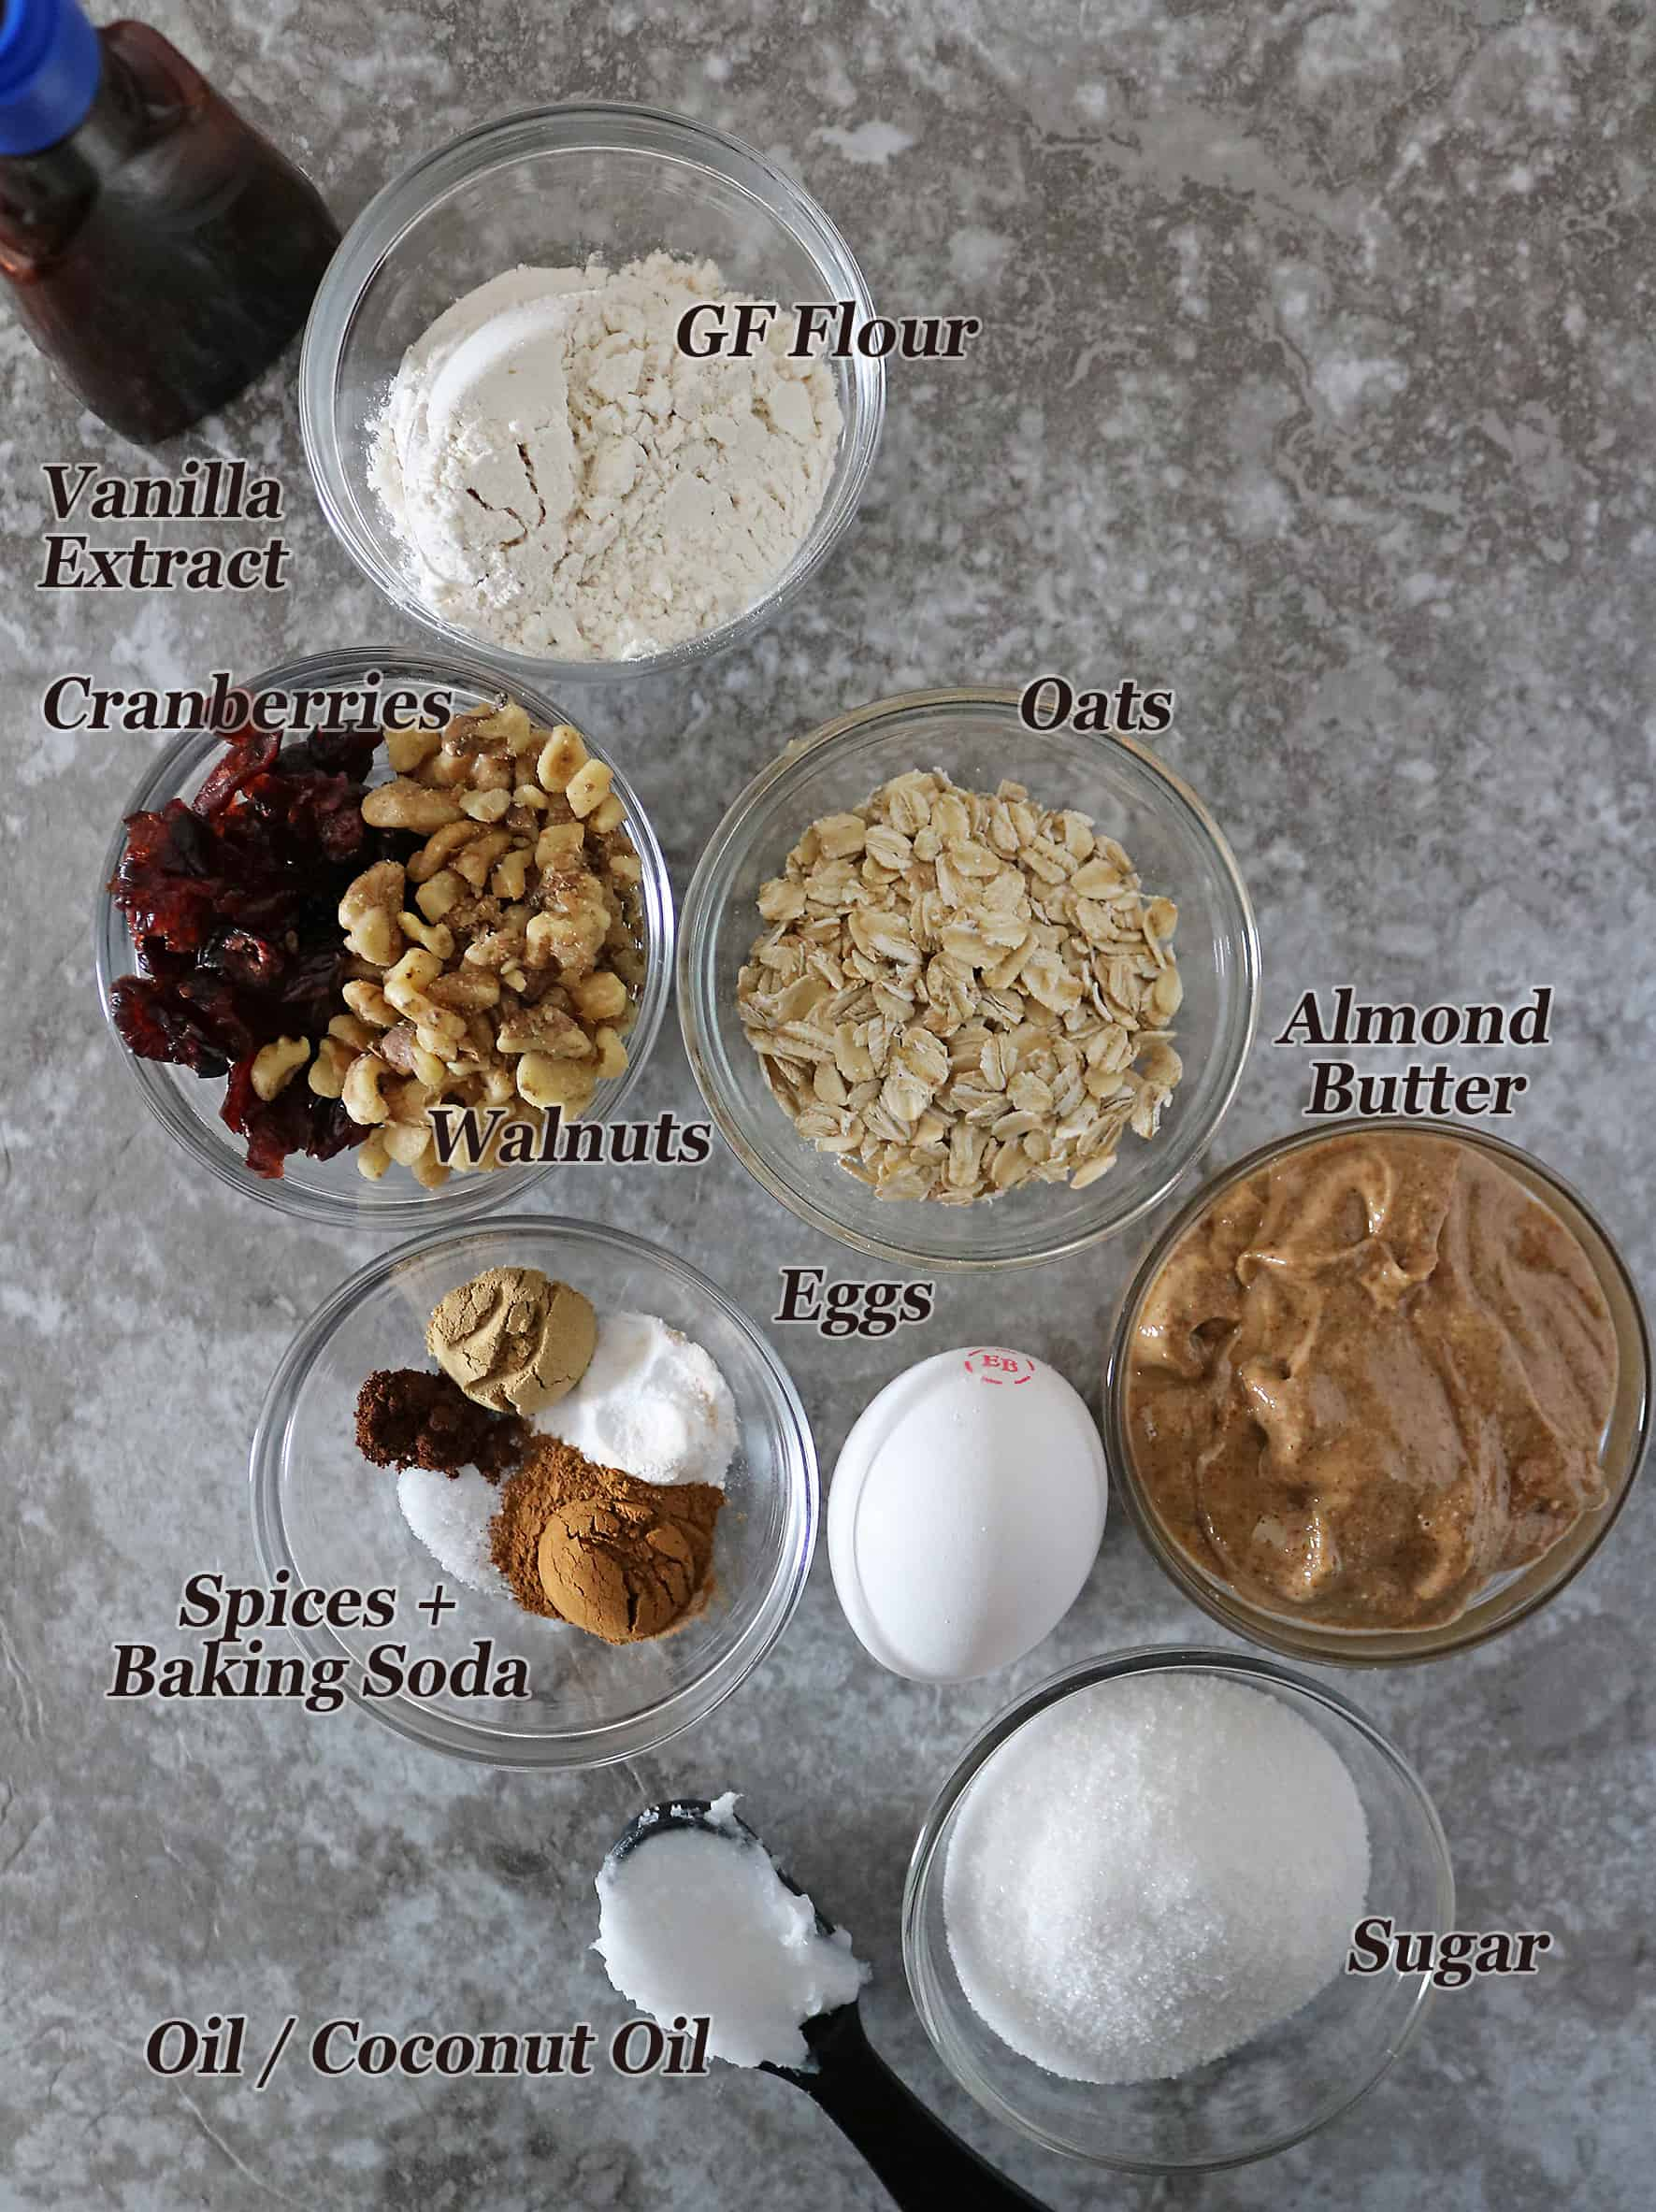 Ingredients for Oatmeal Cranberry Cookies for holidays